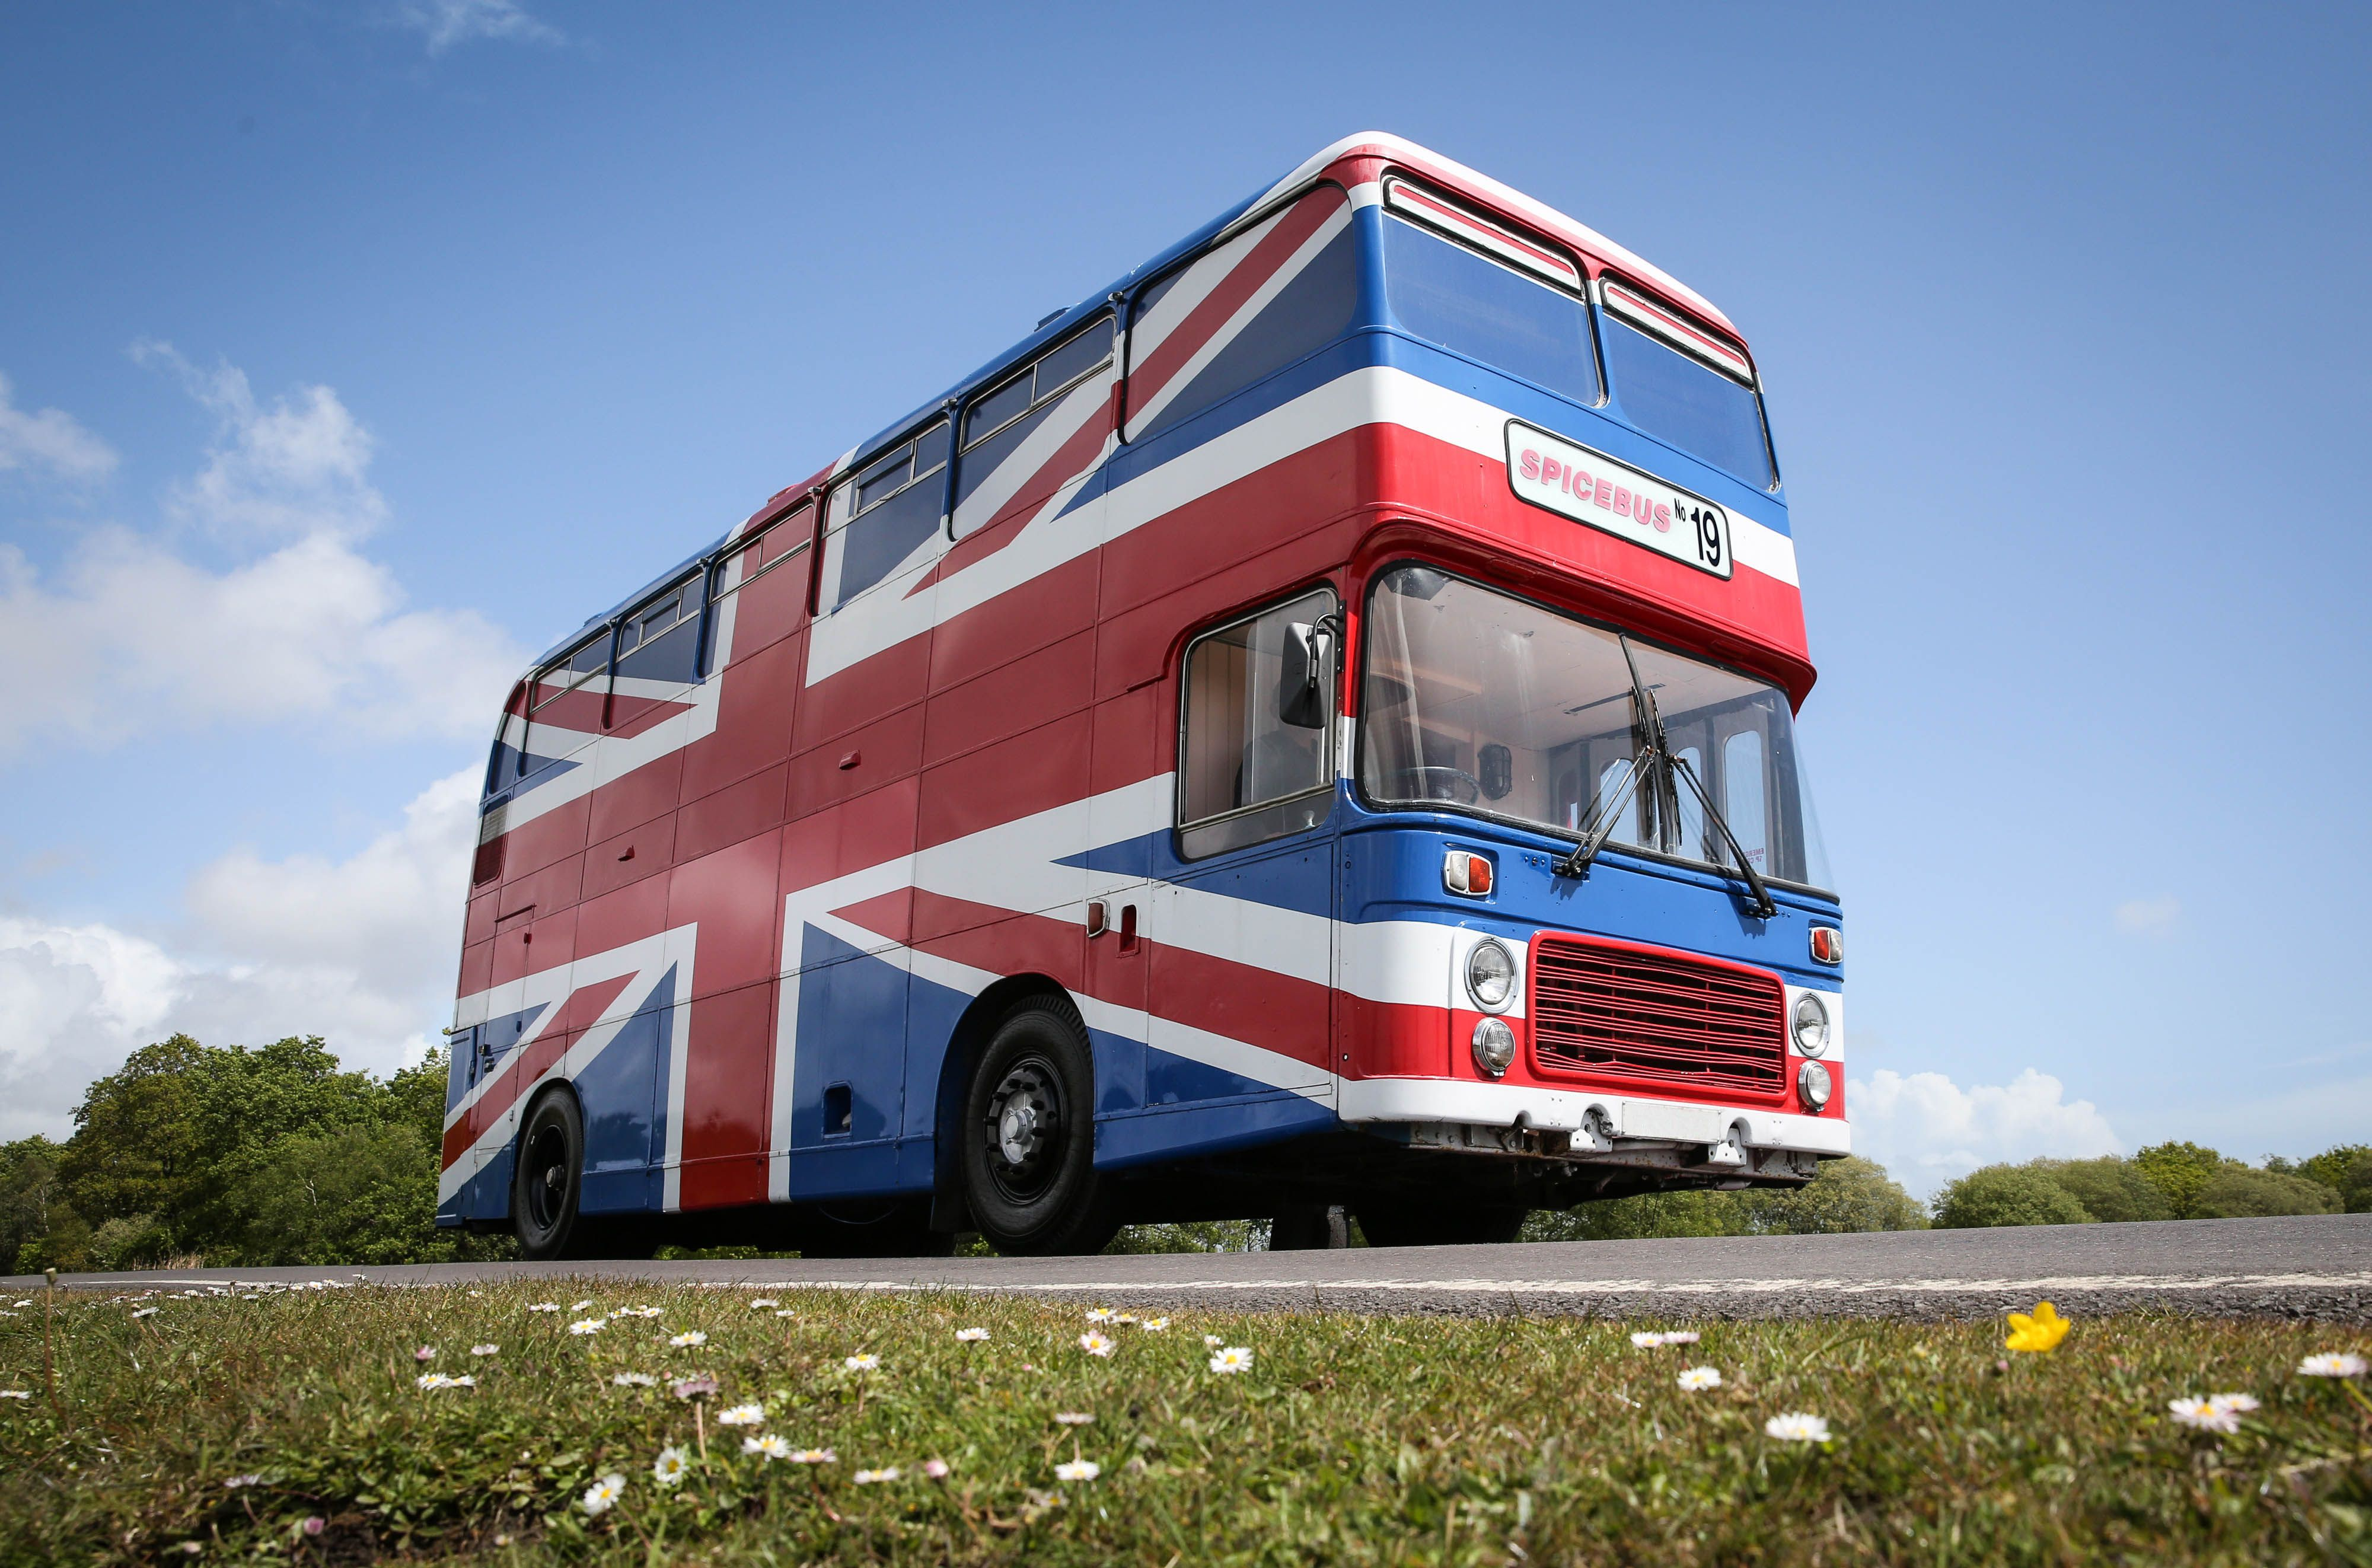 Channel Your Inner Spice Girl With a Sleepover In the Original 'Spice World' Bus